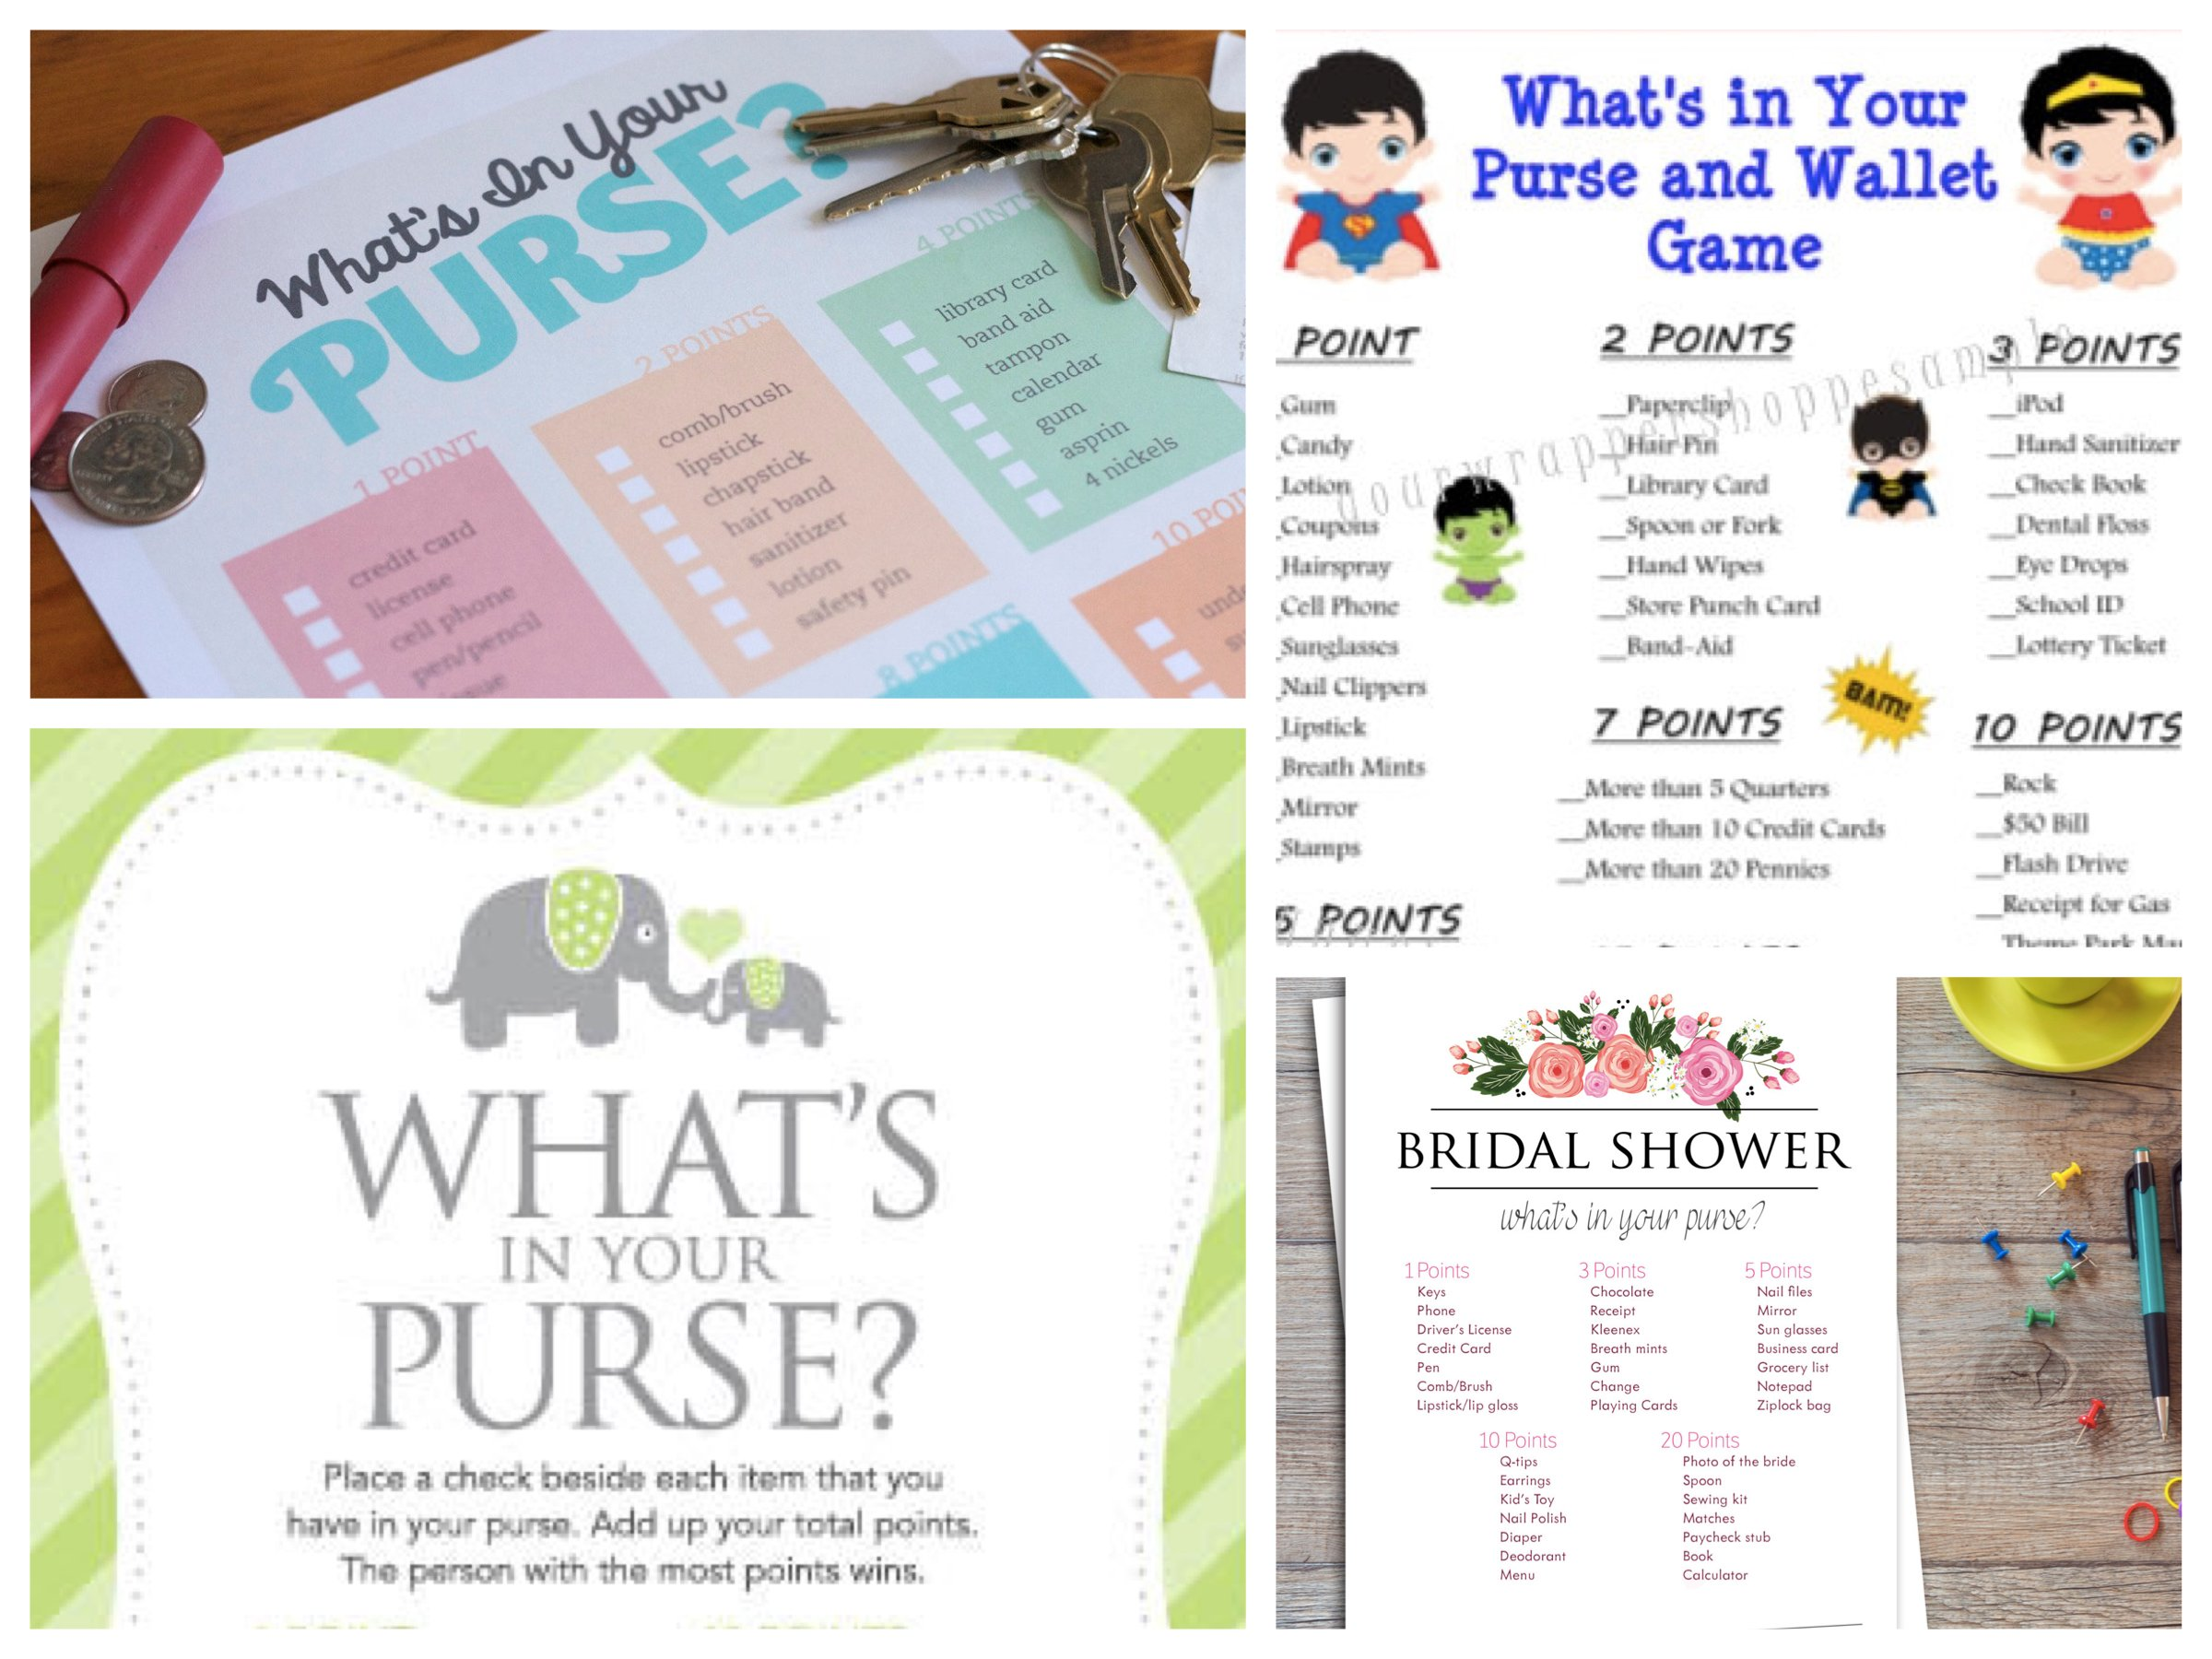 What's in Your Purse Printable Games